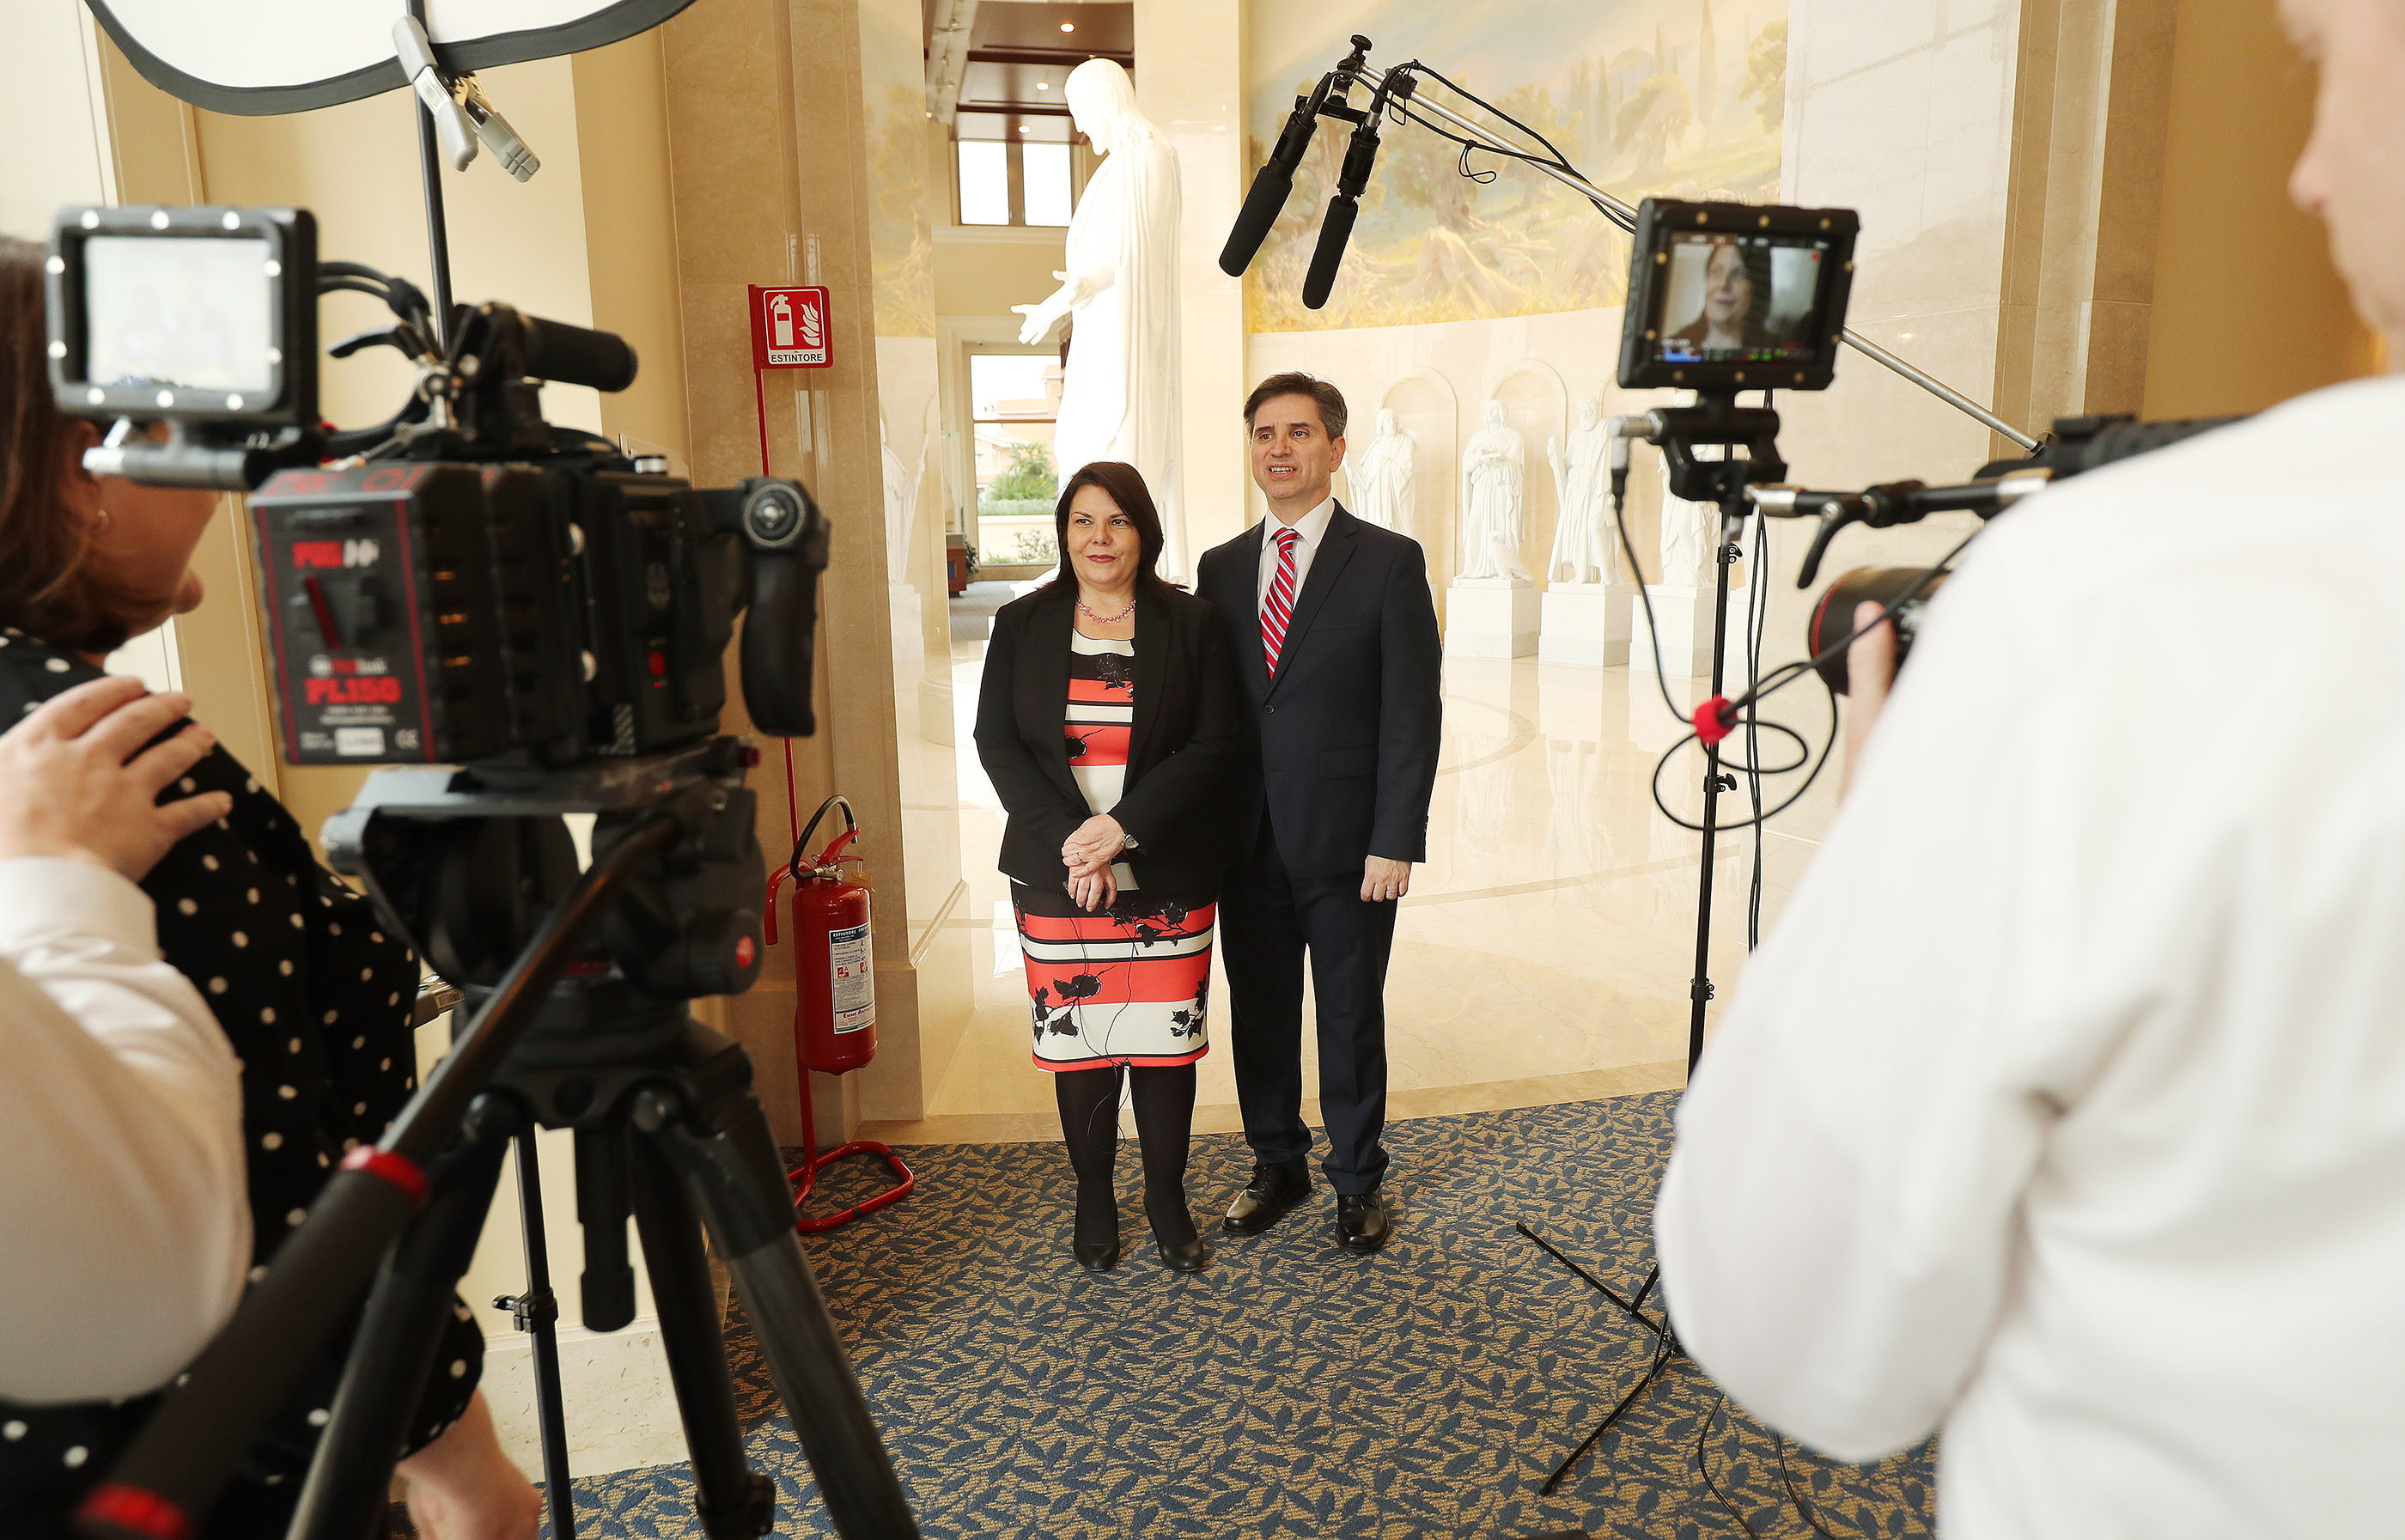 Elder Massimo De Feo, a General Authority Seventy, and his wife, Sister Loredana Galeandro De Feo, speak with media in the Rome Temple Visitors' Center of The Church of Jesus Christ of Latter-day Saints in Rome, Italy, on Friday, March 8, 2019. De Feo was born in Italy.